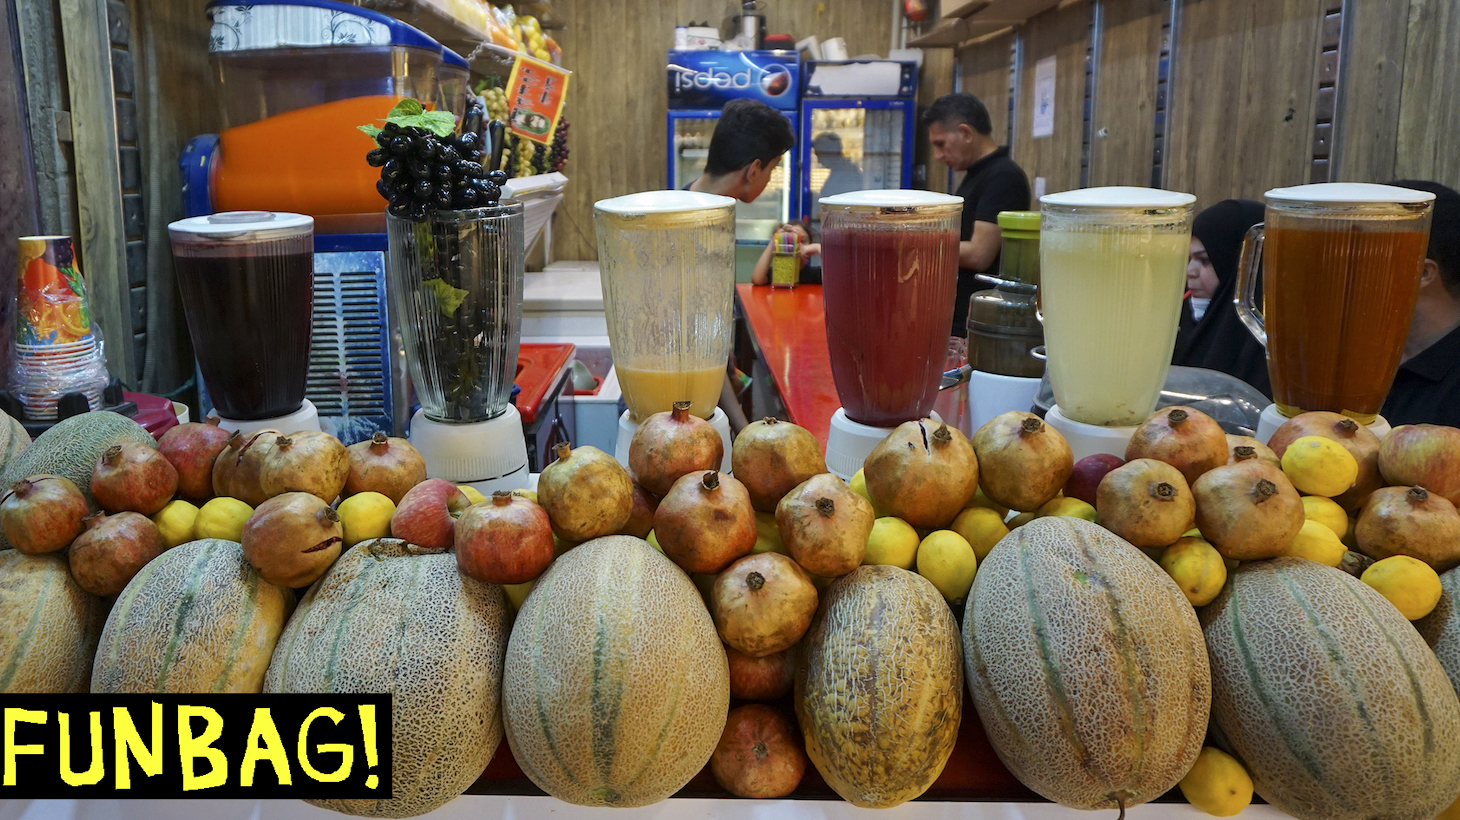 Iraqis drink juice at a shop in a market in Iraq's central shrine city of Najaf on September 15, 2020, during the coronavirus pandemic. (Photo by Sabah ARAR / AFP) (Photo by SABAH ARAR/AFP via Getty Images)